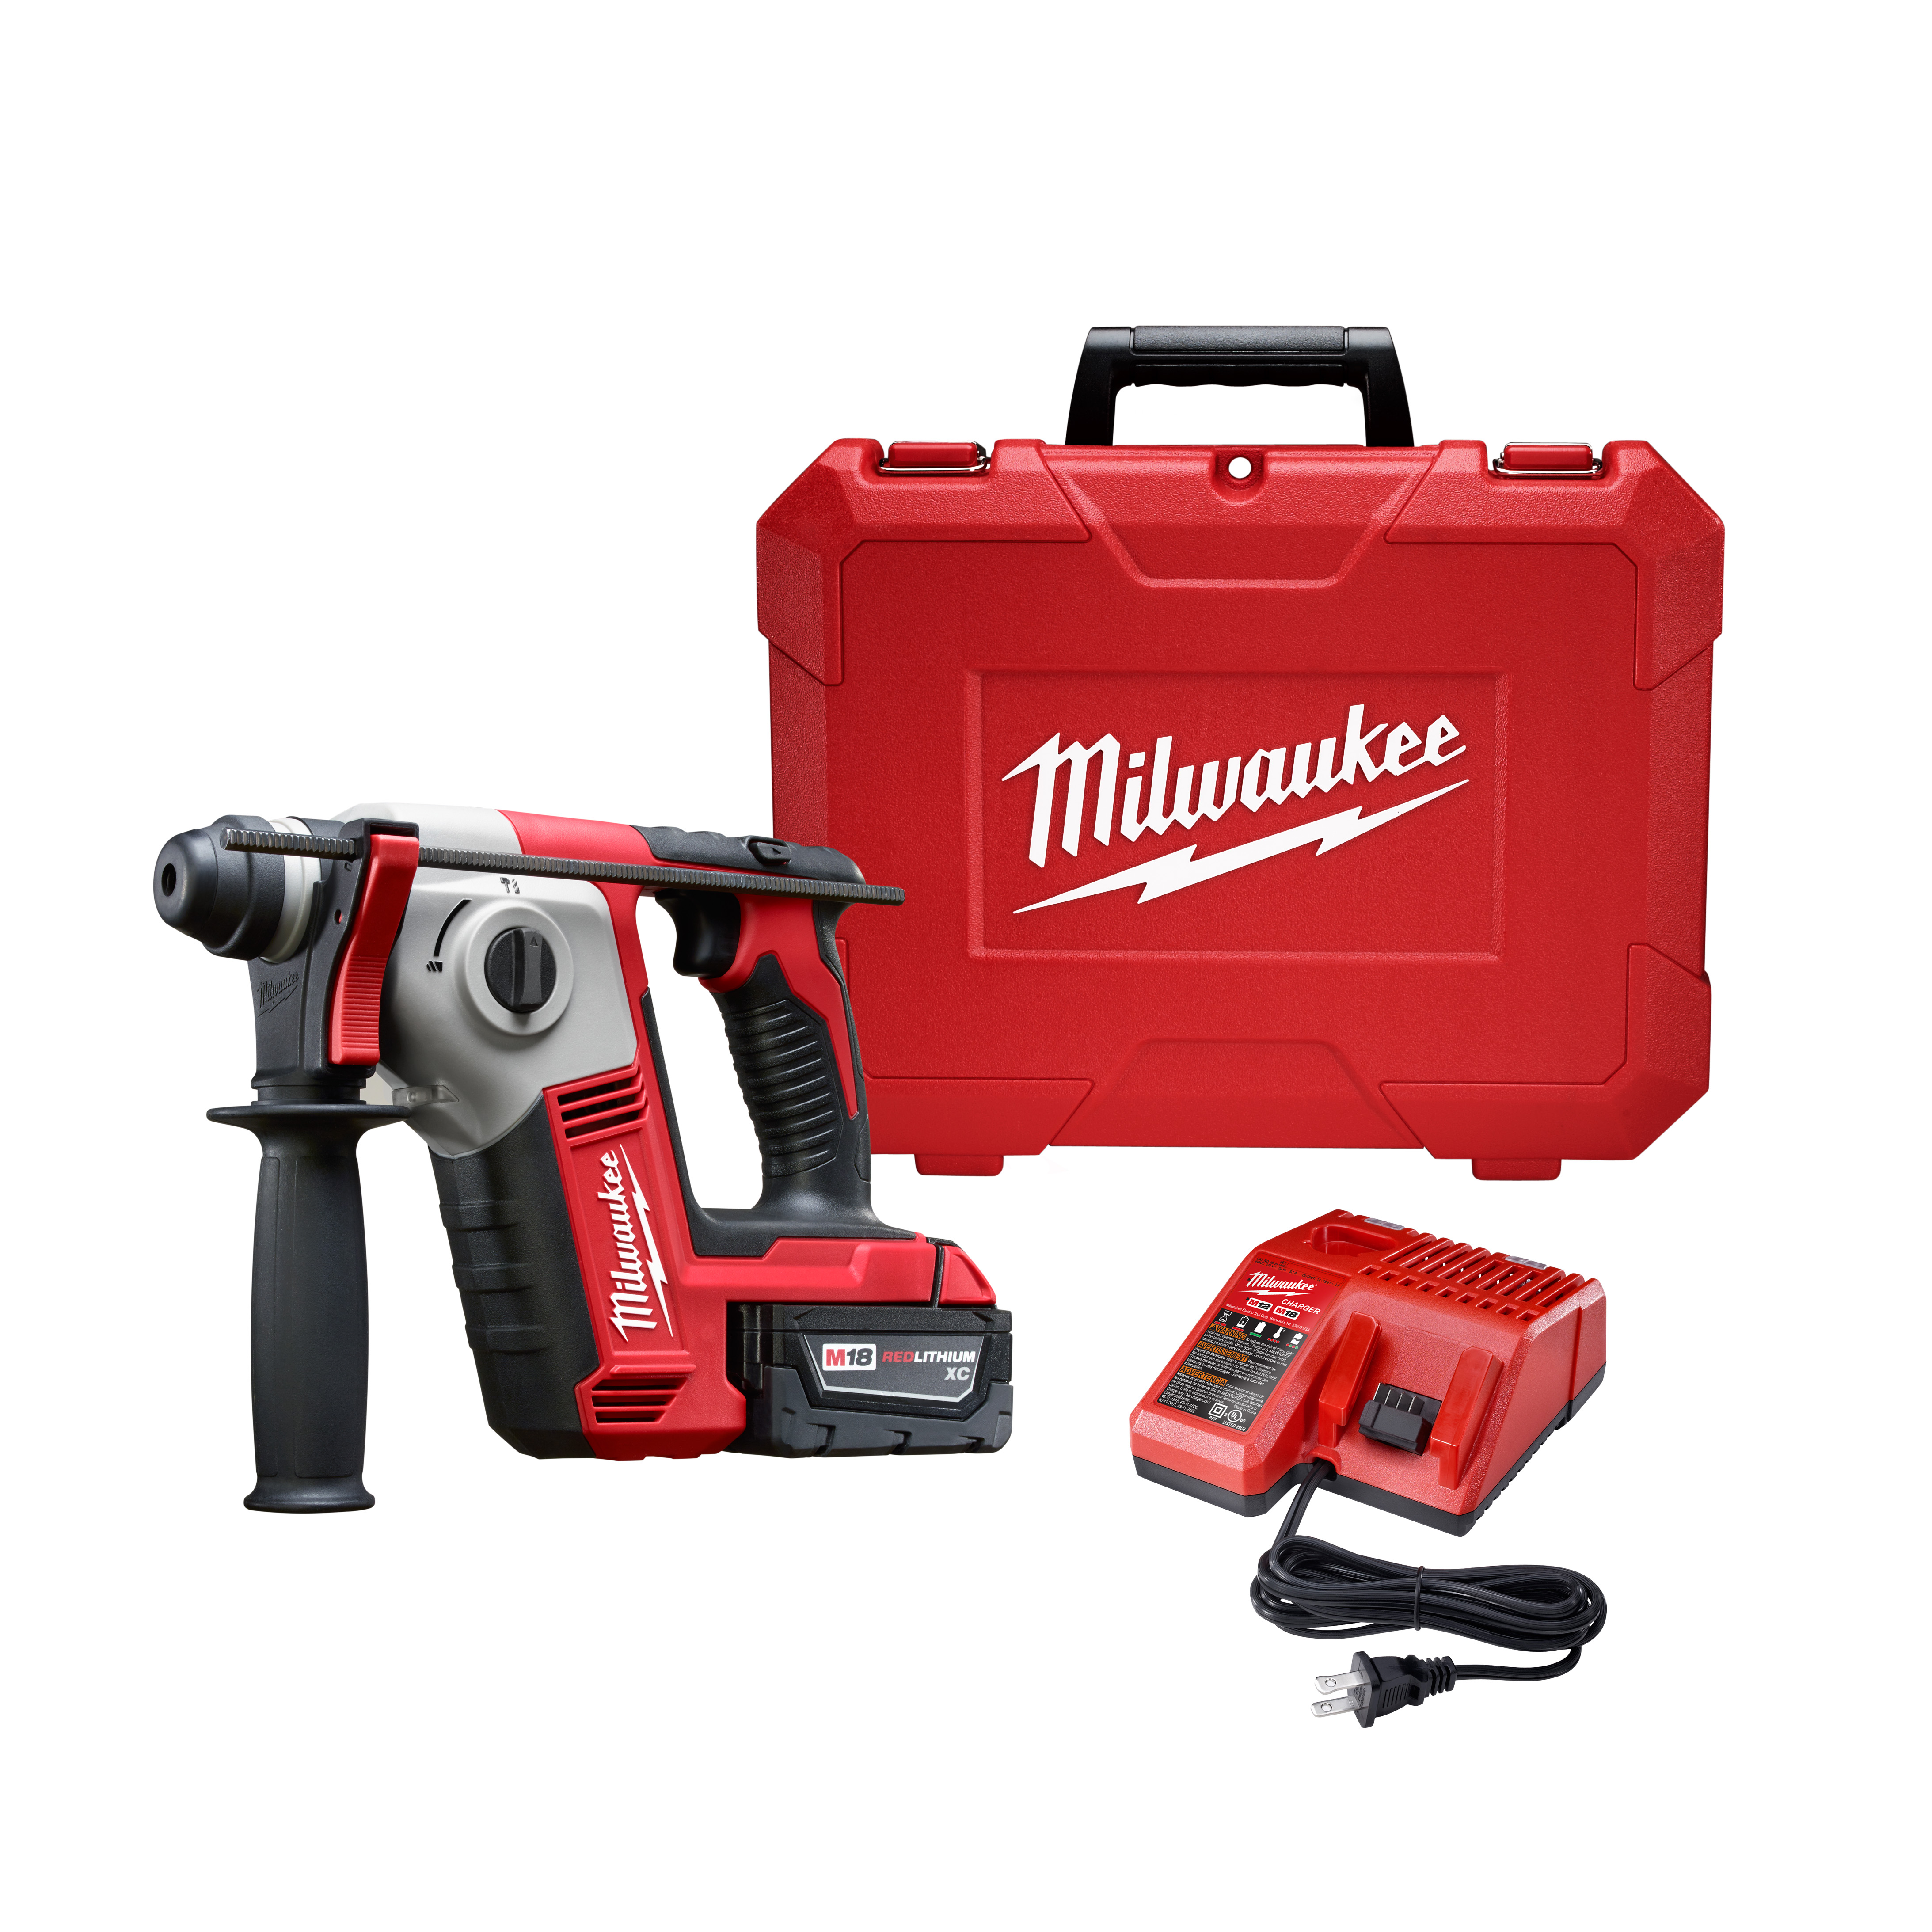 Milwaukee® M18™ 2612-21 Cordless Rotary Hammer Kit, 5/8 in Keyless/SDS Plus® Chuck, 18 VDC, 1300 rpm No-Load, Lithium-Ion Battery